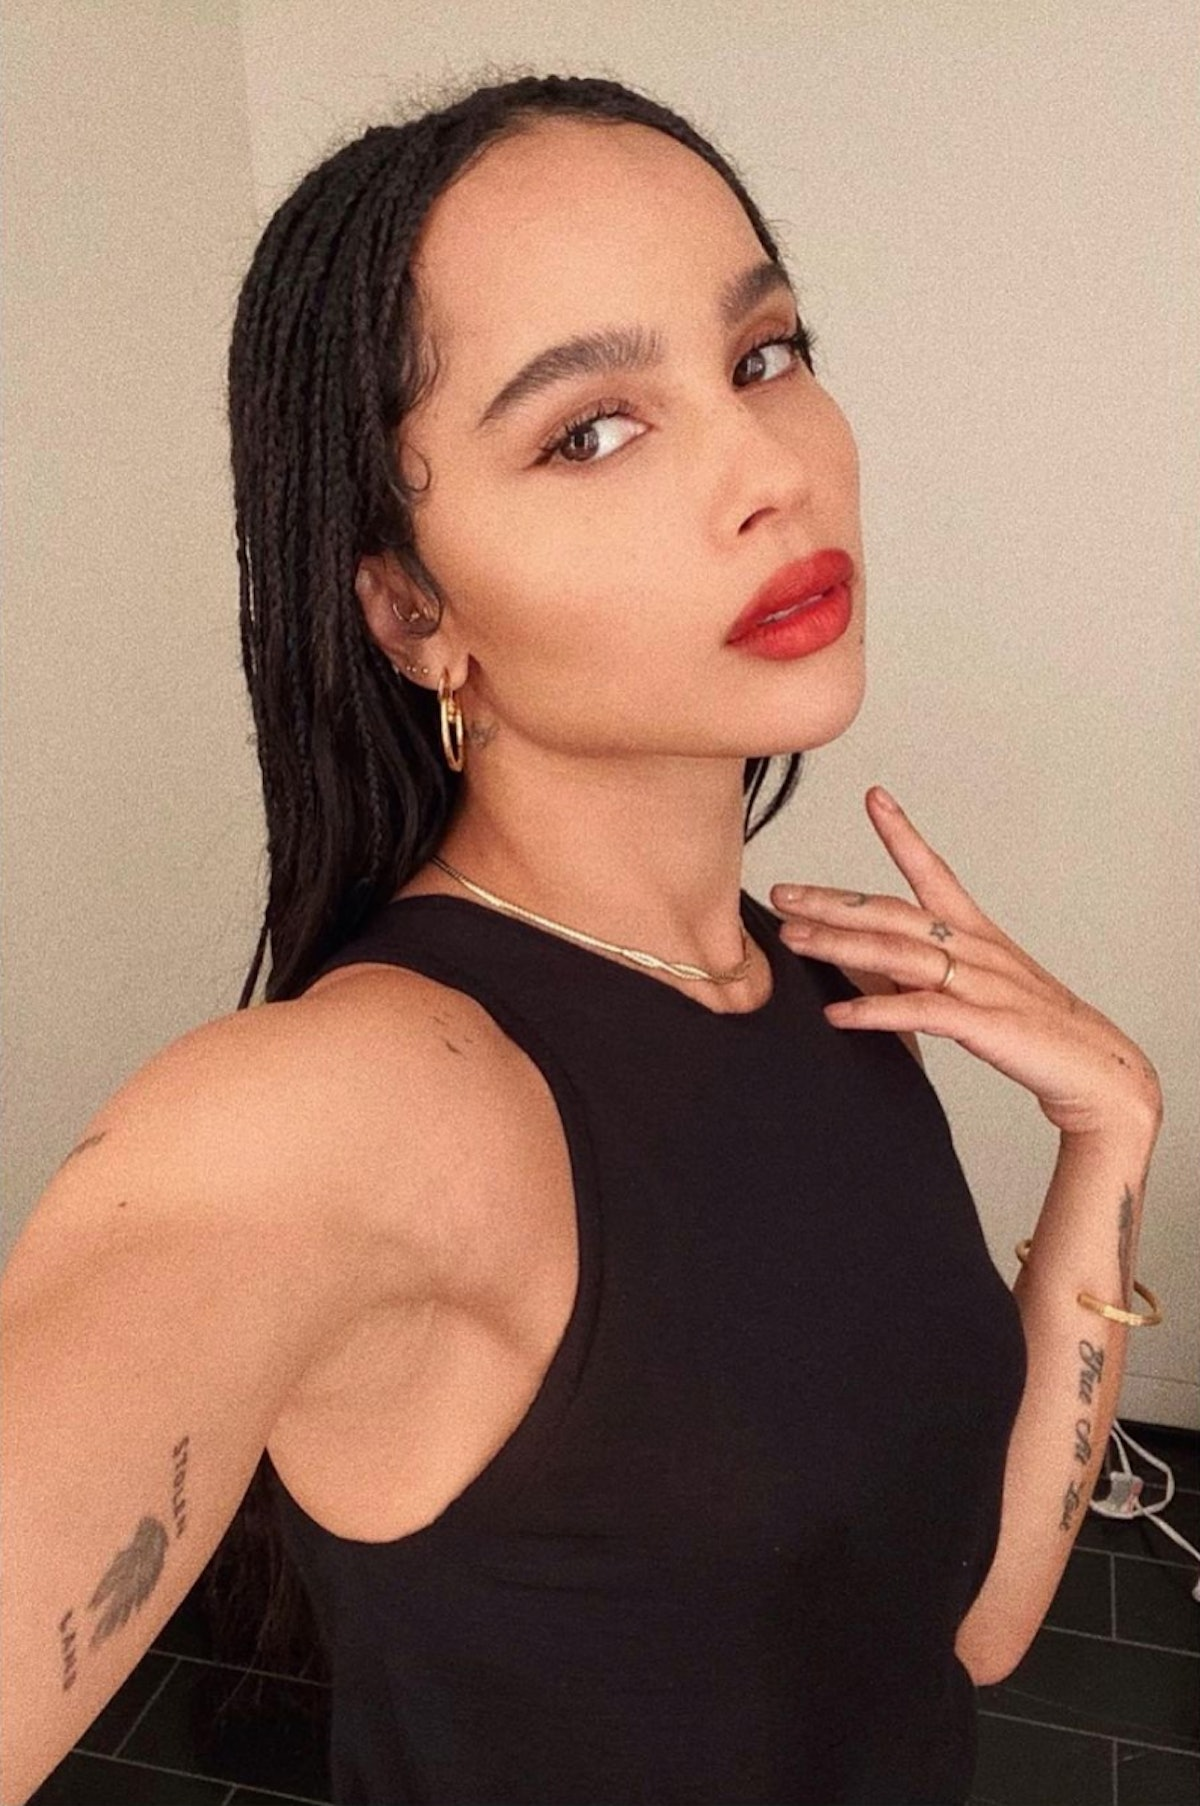 Zoe Kravitz wearing YSL's red lipstick and simple gold jewelry.